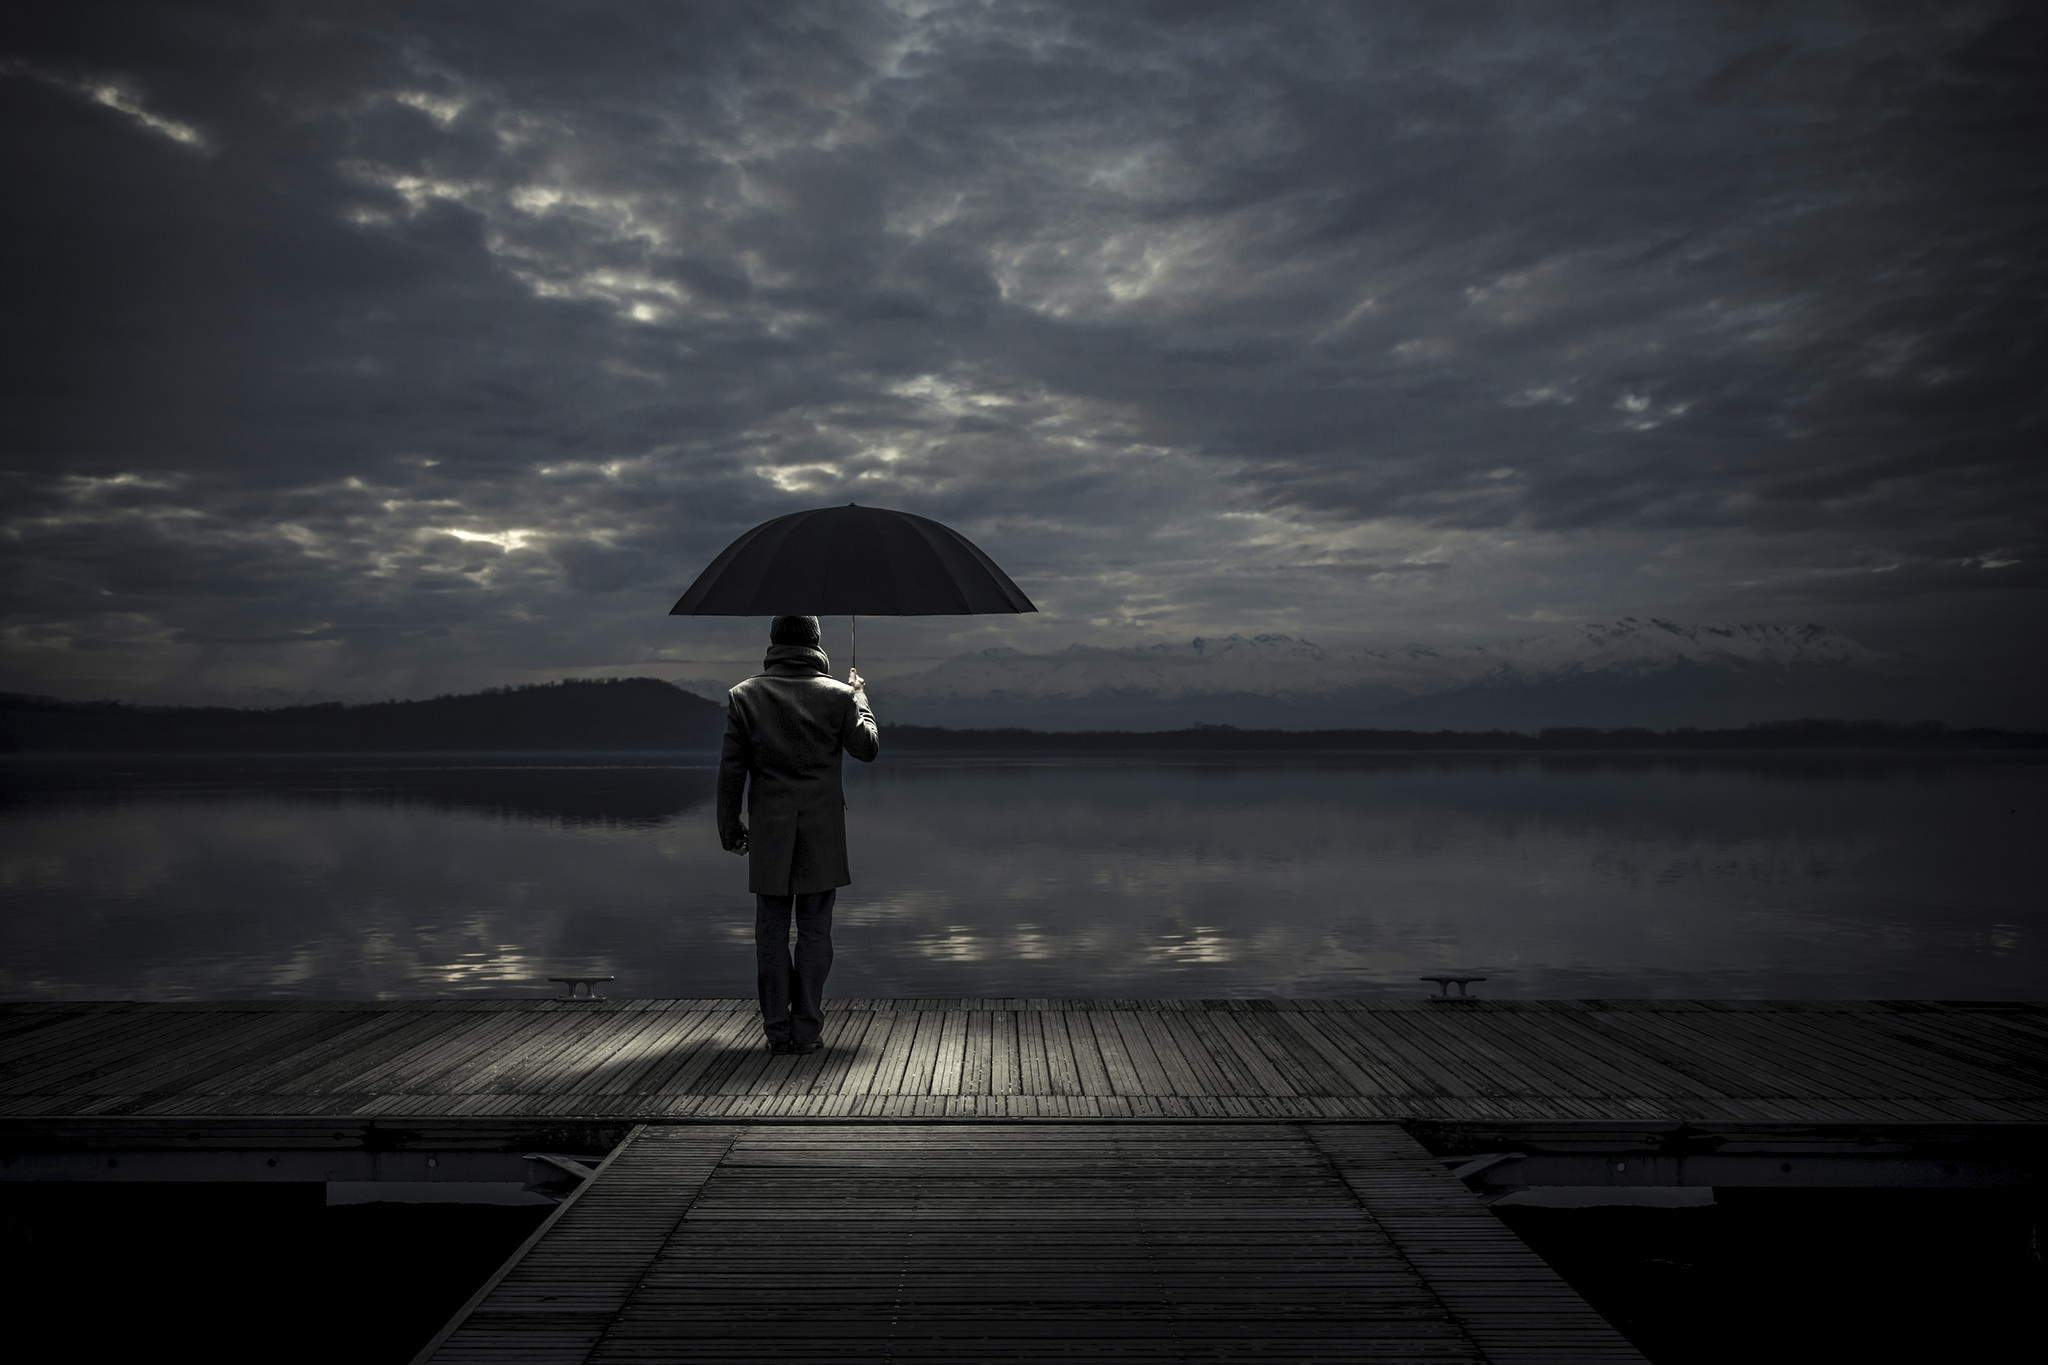 Desktop Wallpaper Alone Love : 1280x1024 Alone man With Umbrella 1280x1024 Resolution HD 4k Wallpapers, Images, Backgrounds ...